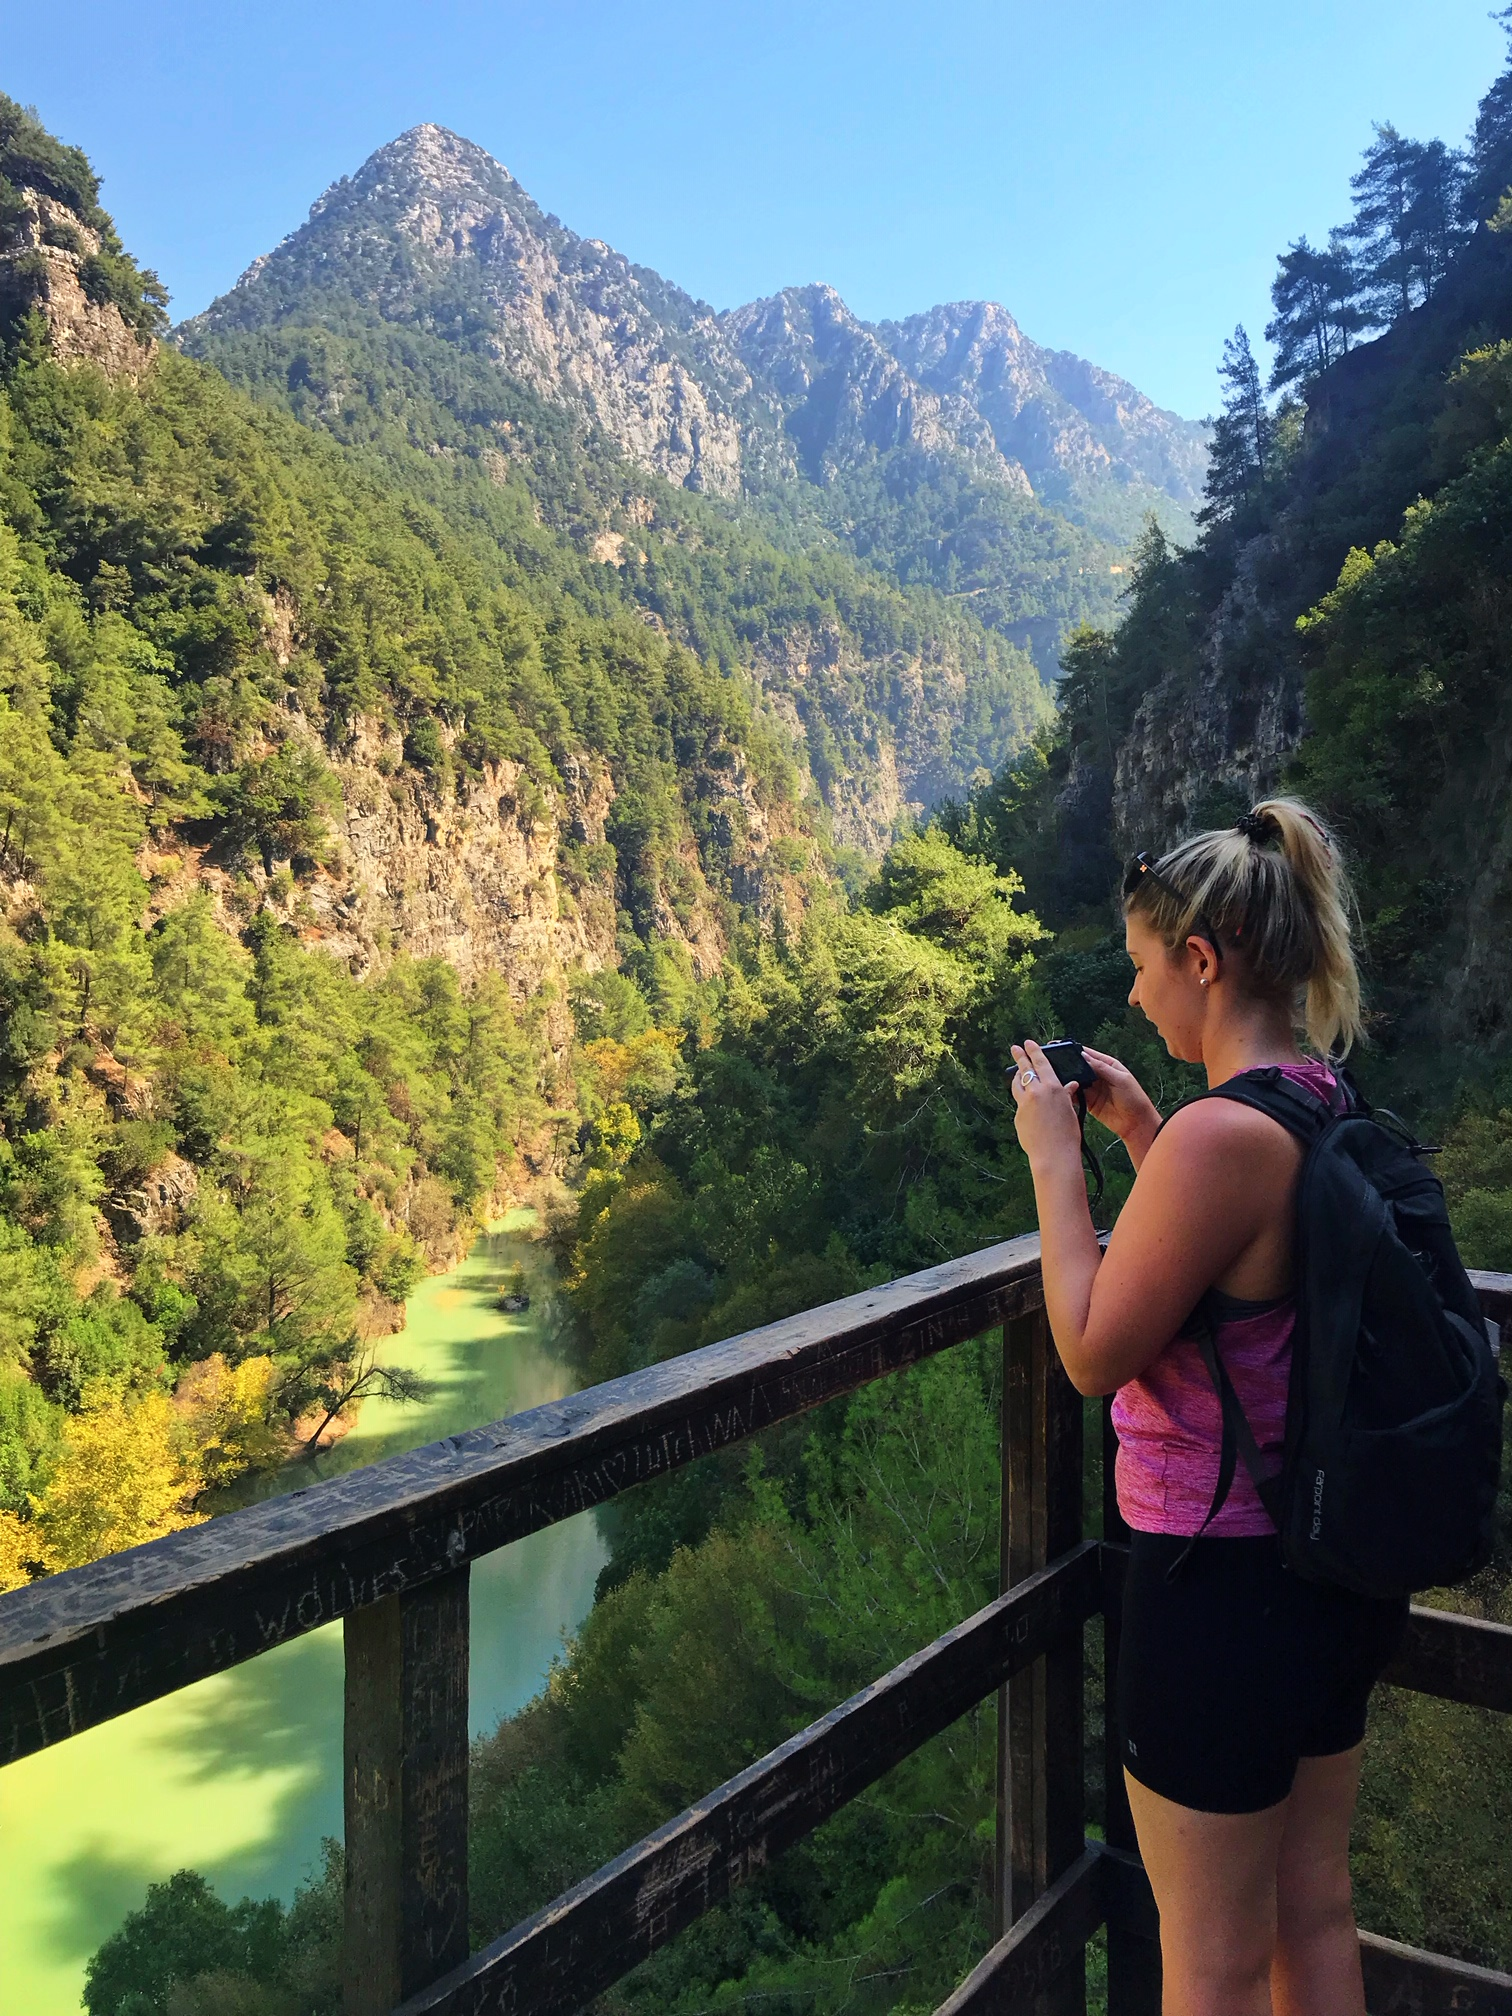 Chouwen Day Tour